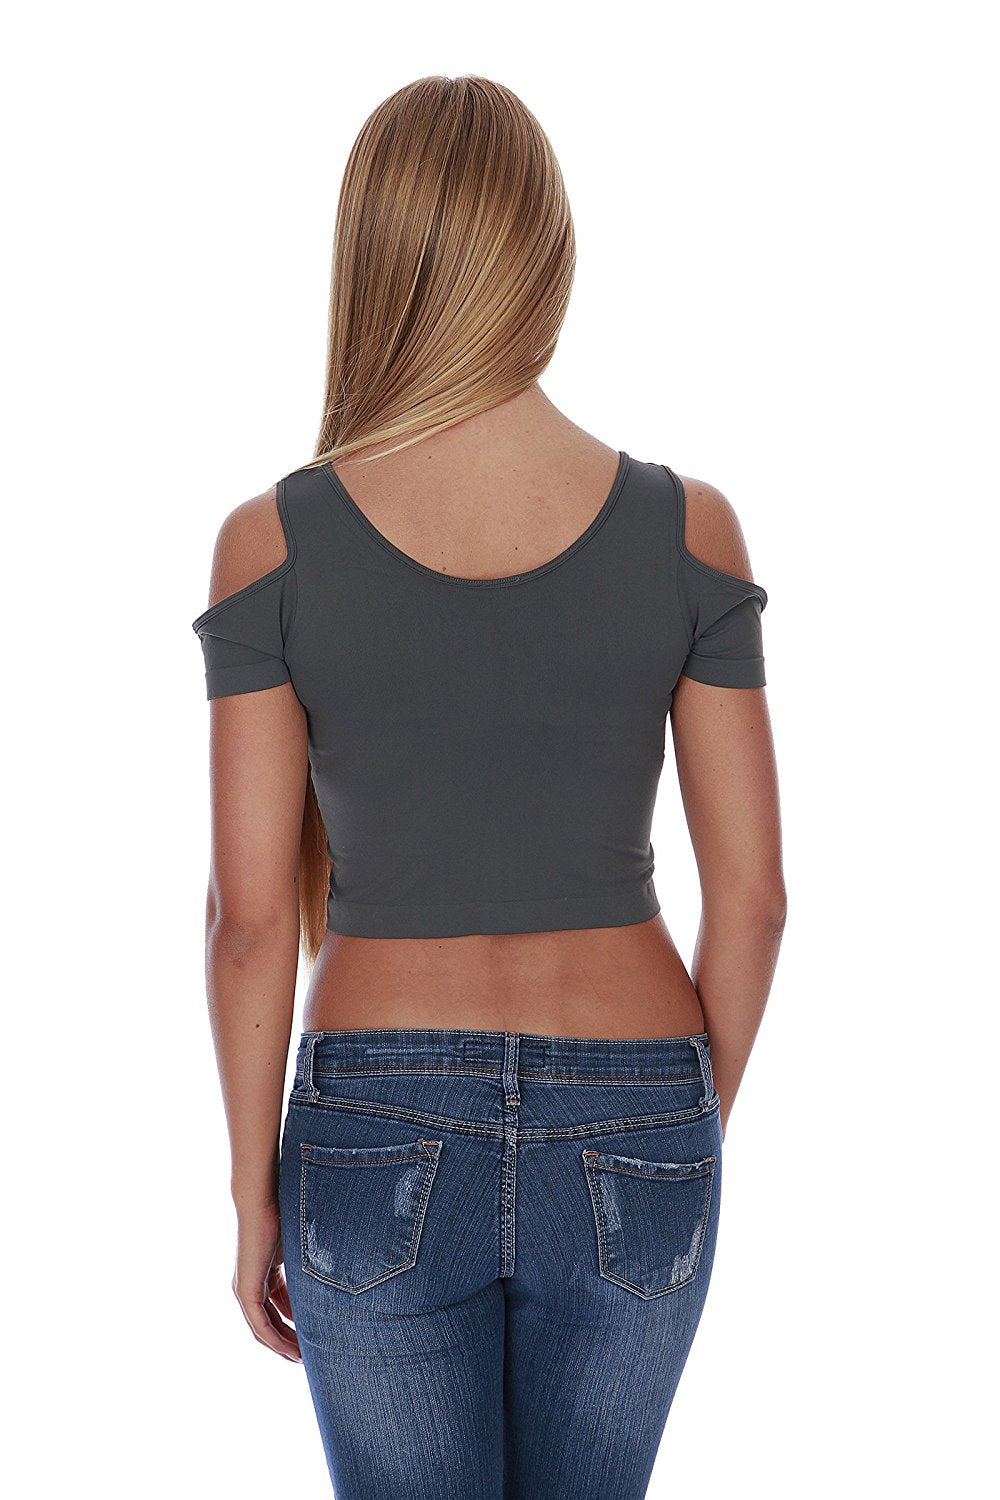 Hollywood Star Fashion Women's Cut-Out Shoulder Crop Top Tank Seamless Shirt